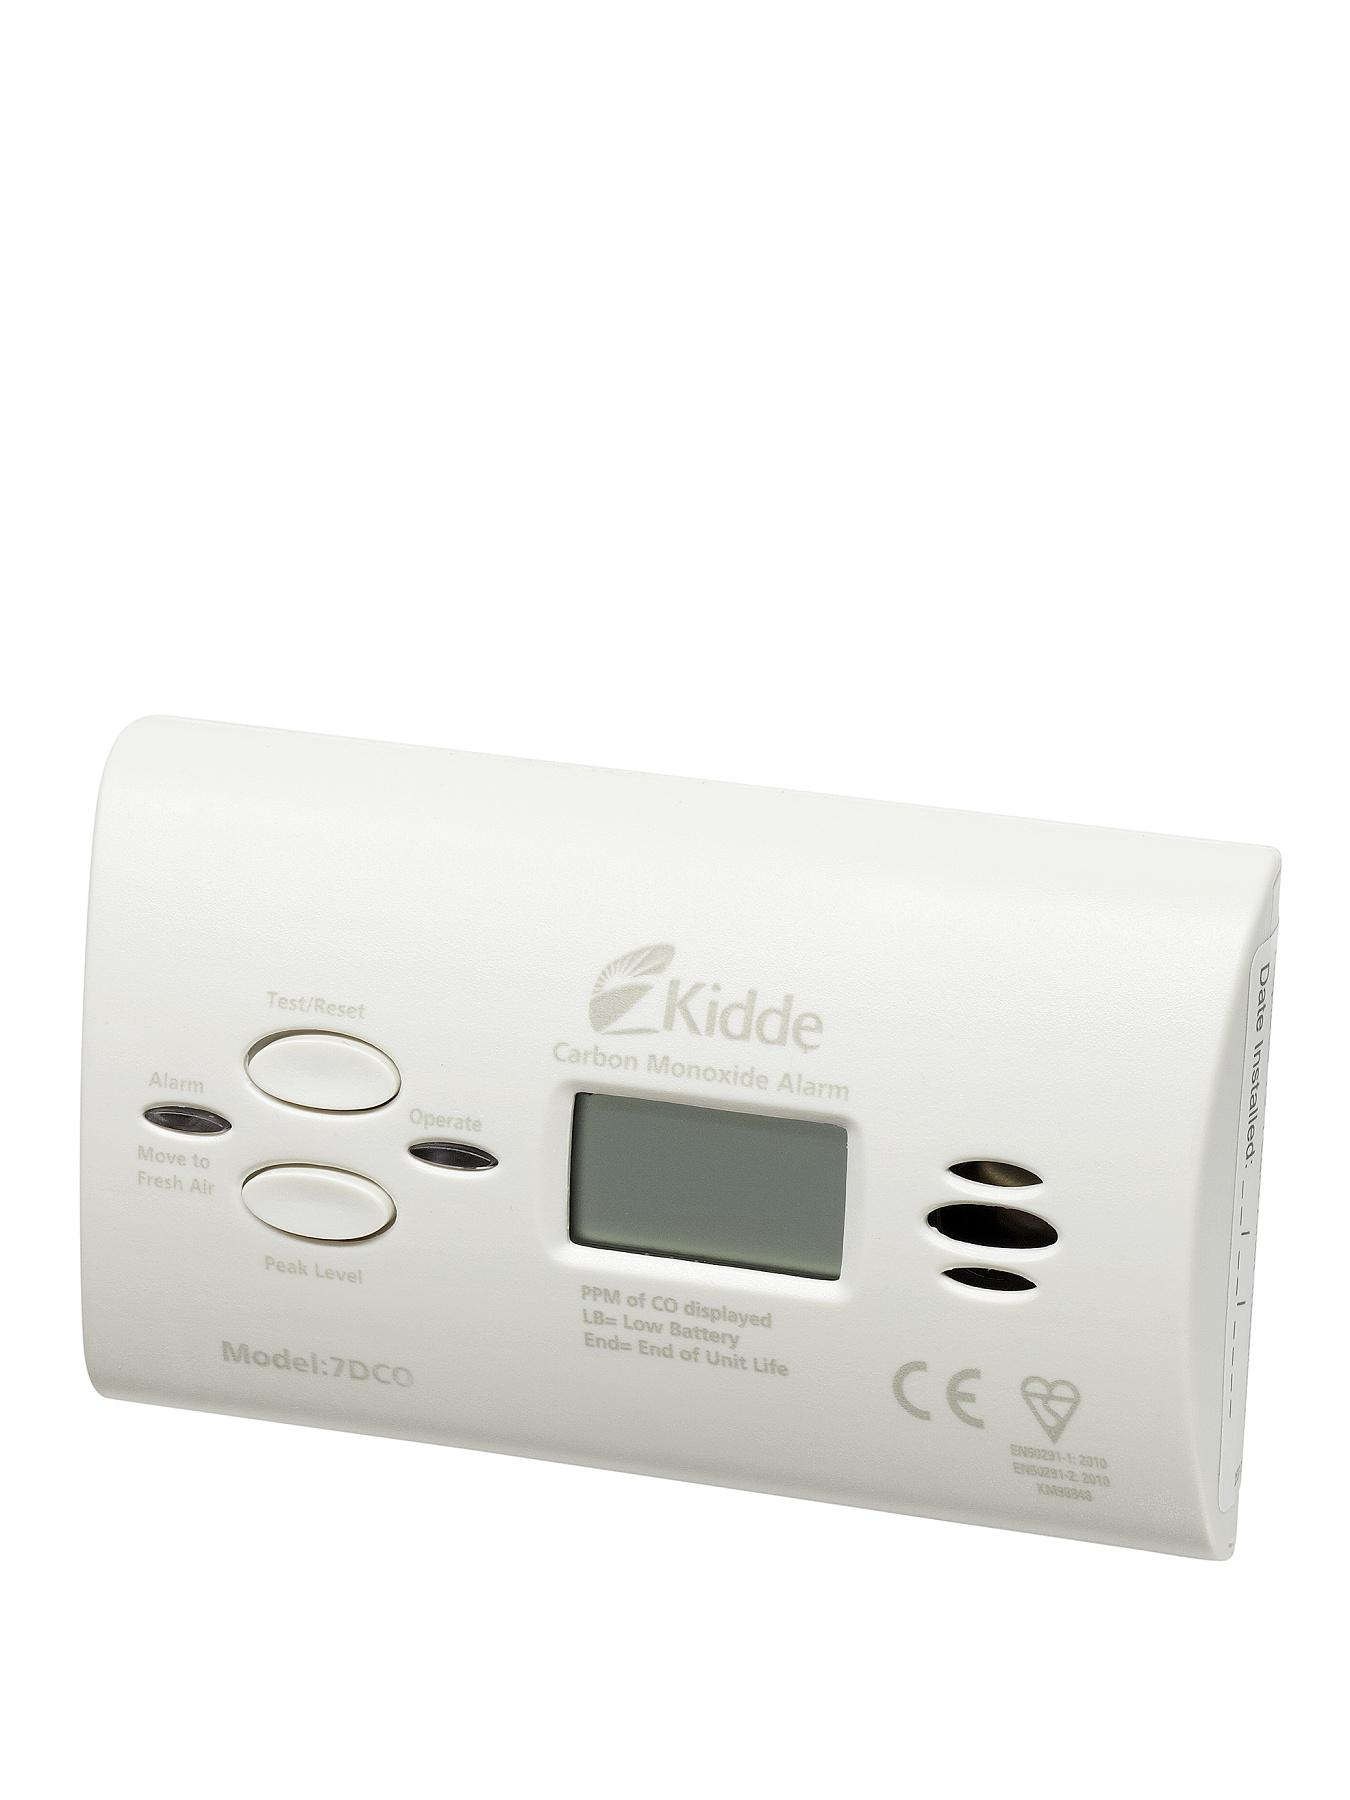 Kidde 7DCO 10 Year Carbon Monoxide Alarm with Digital Display